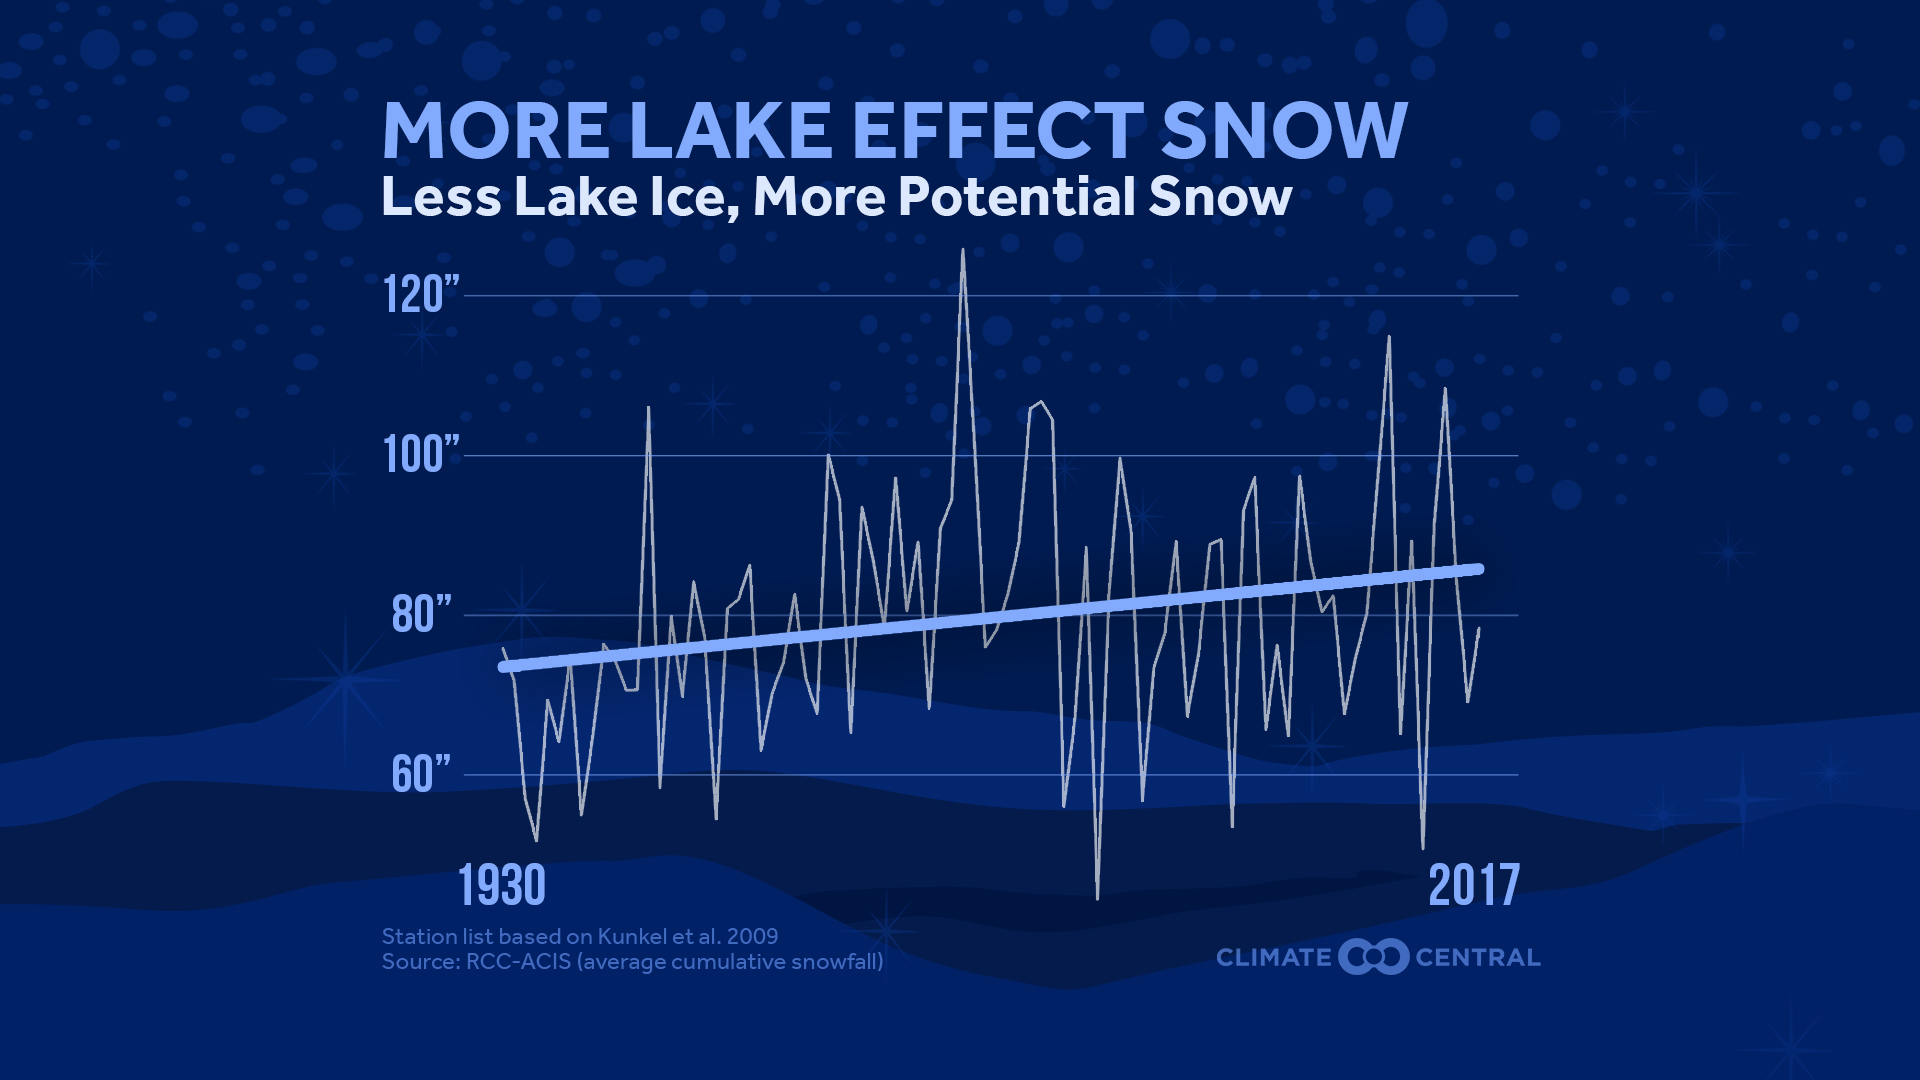 Lake effect snow season is shifting and contracting climate central lake effect snow will still occur in a warming world but by the late 21st century we can expect a shortened lake effect snow season pooptronica Images